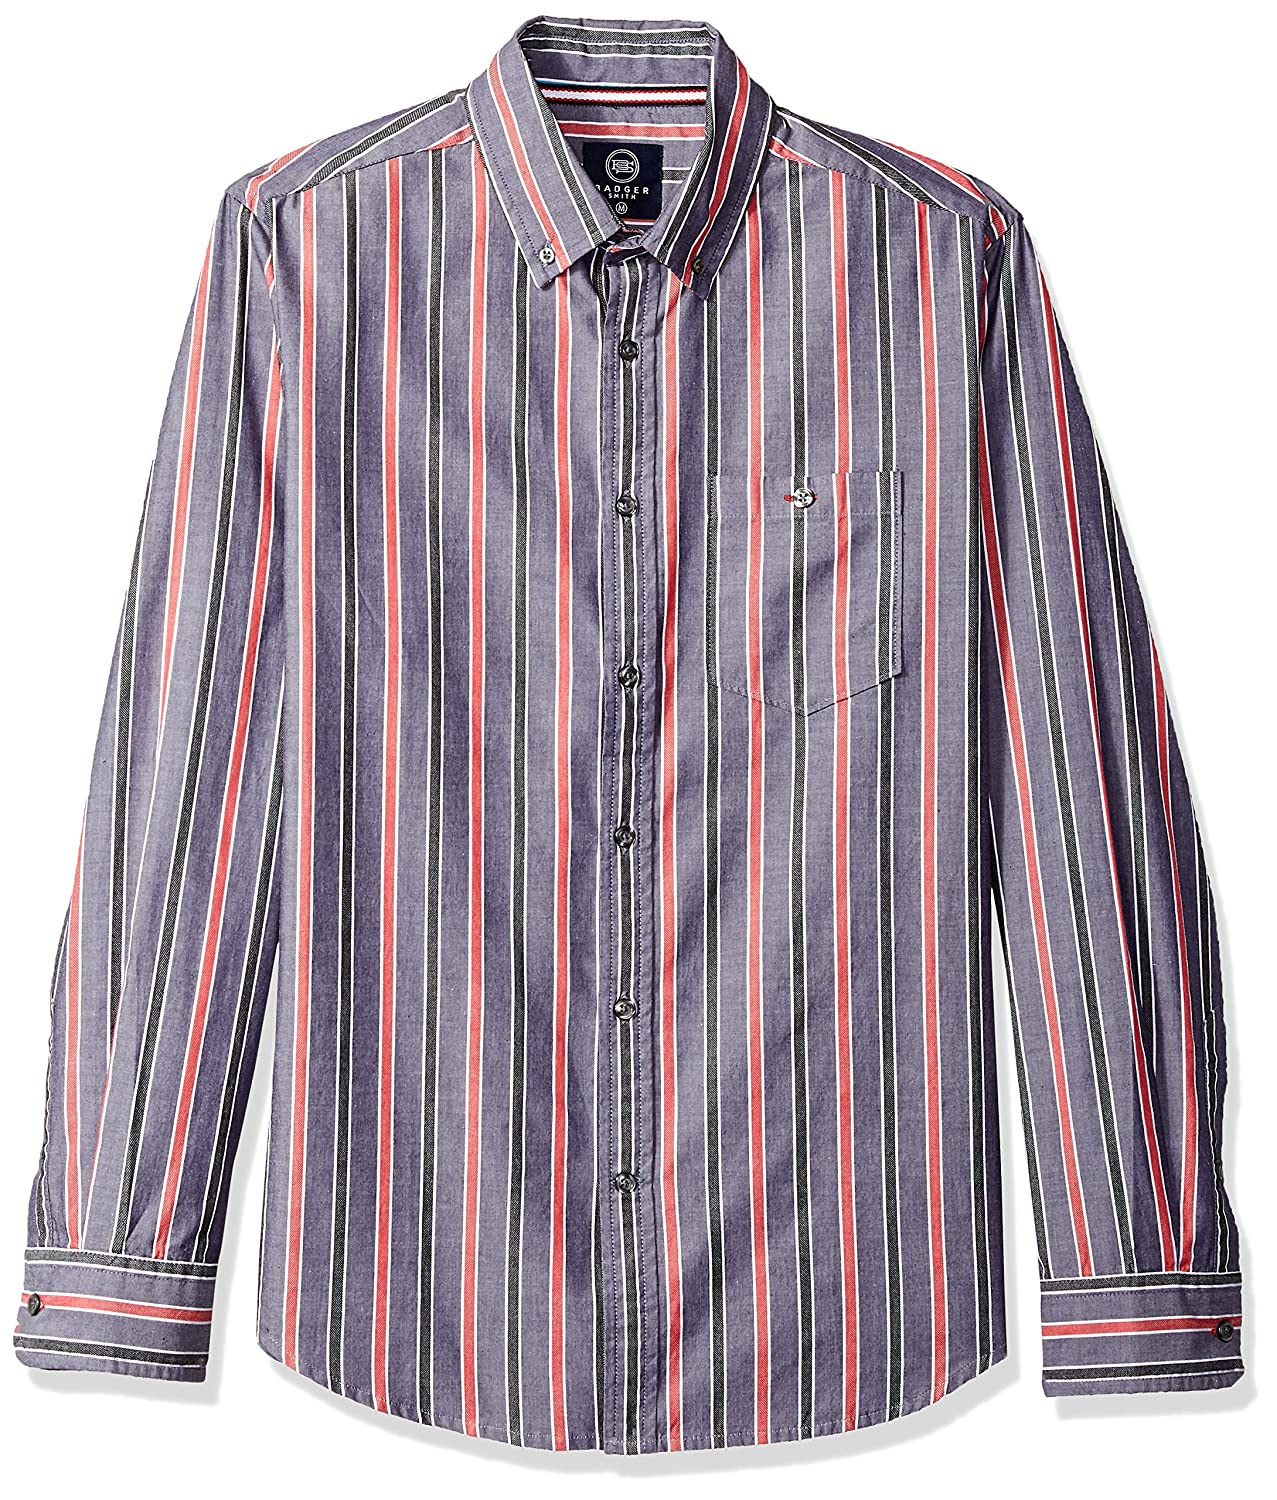 Badger Smith Mens Cotton Chambray Stripes Slim Fit Button Down Shirt